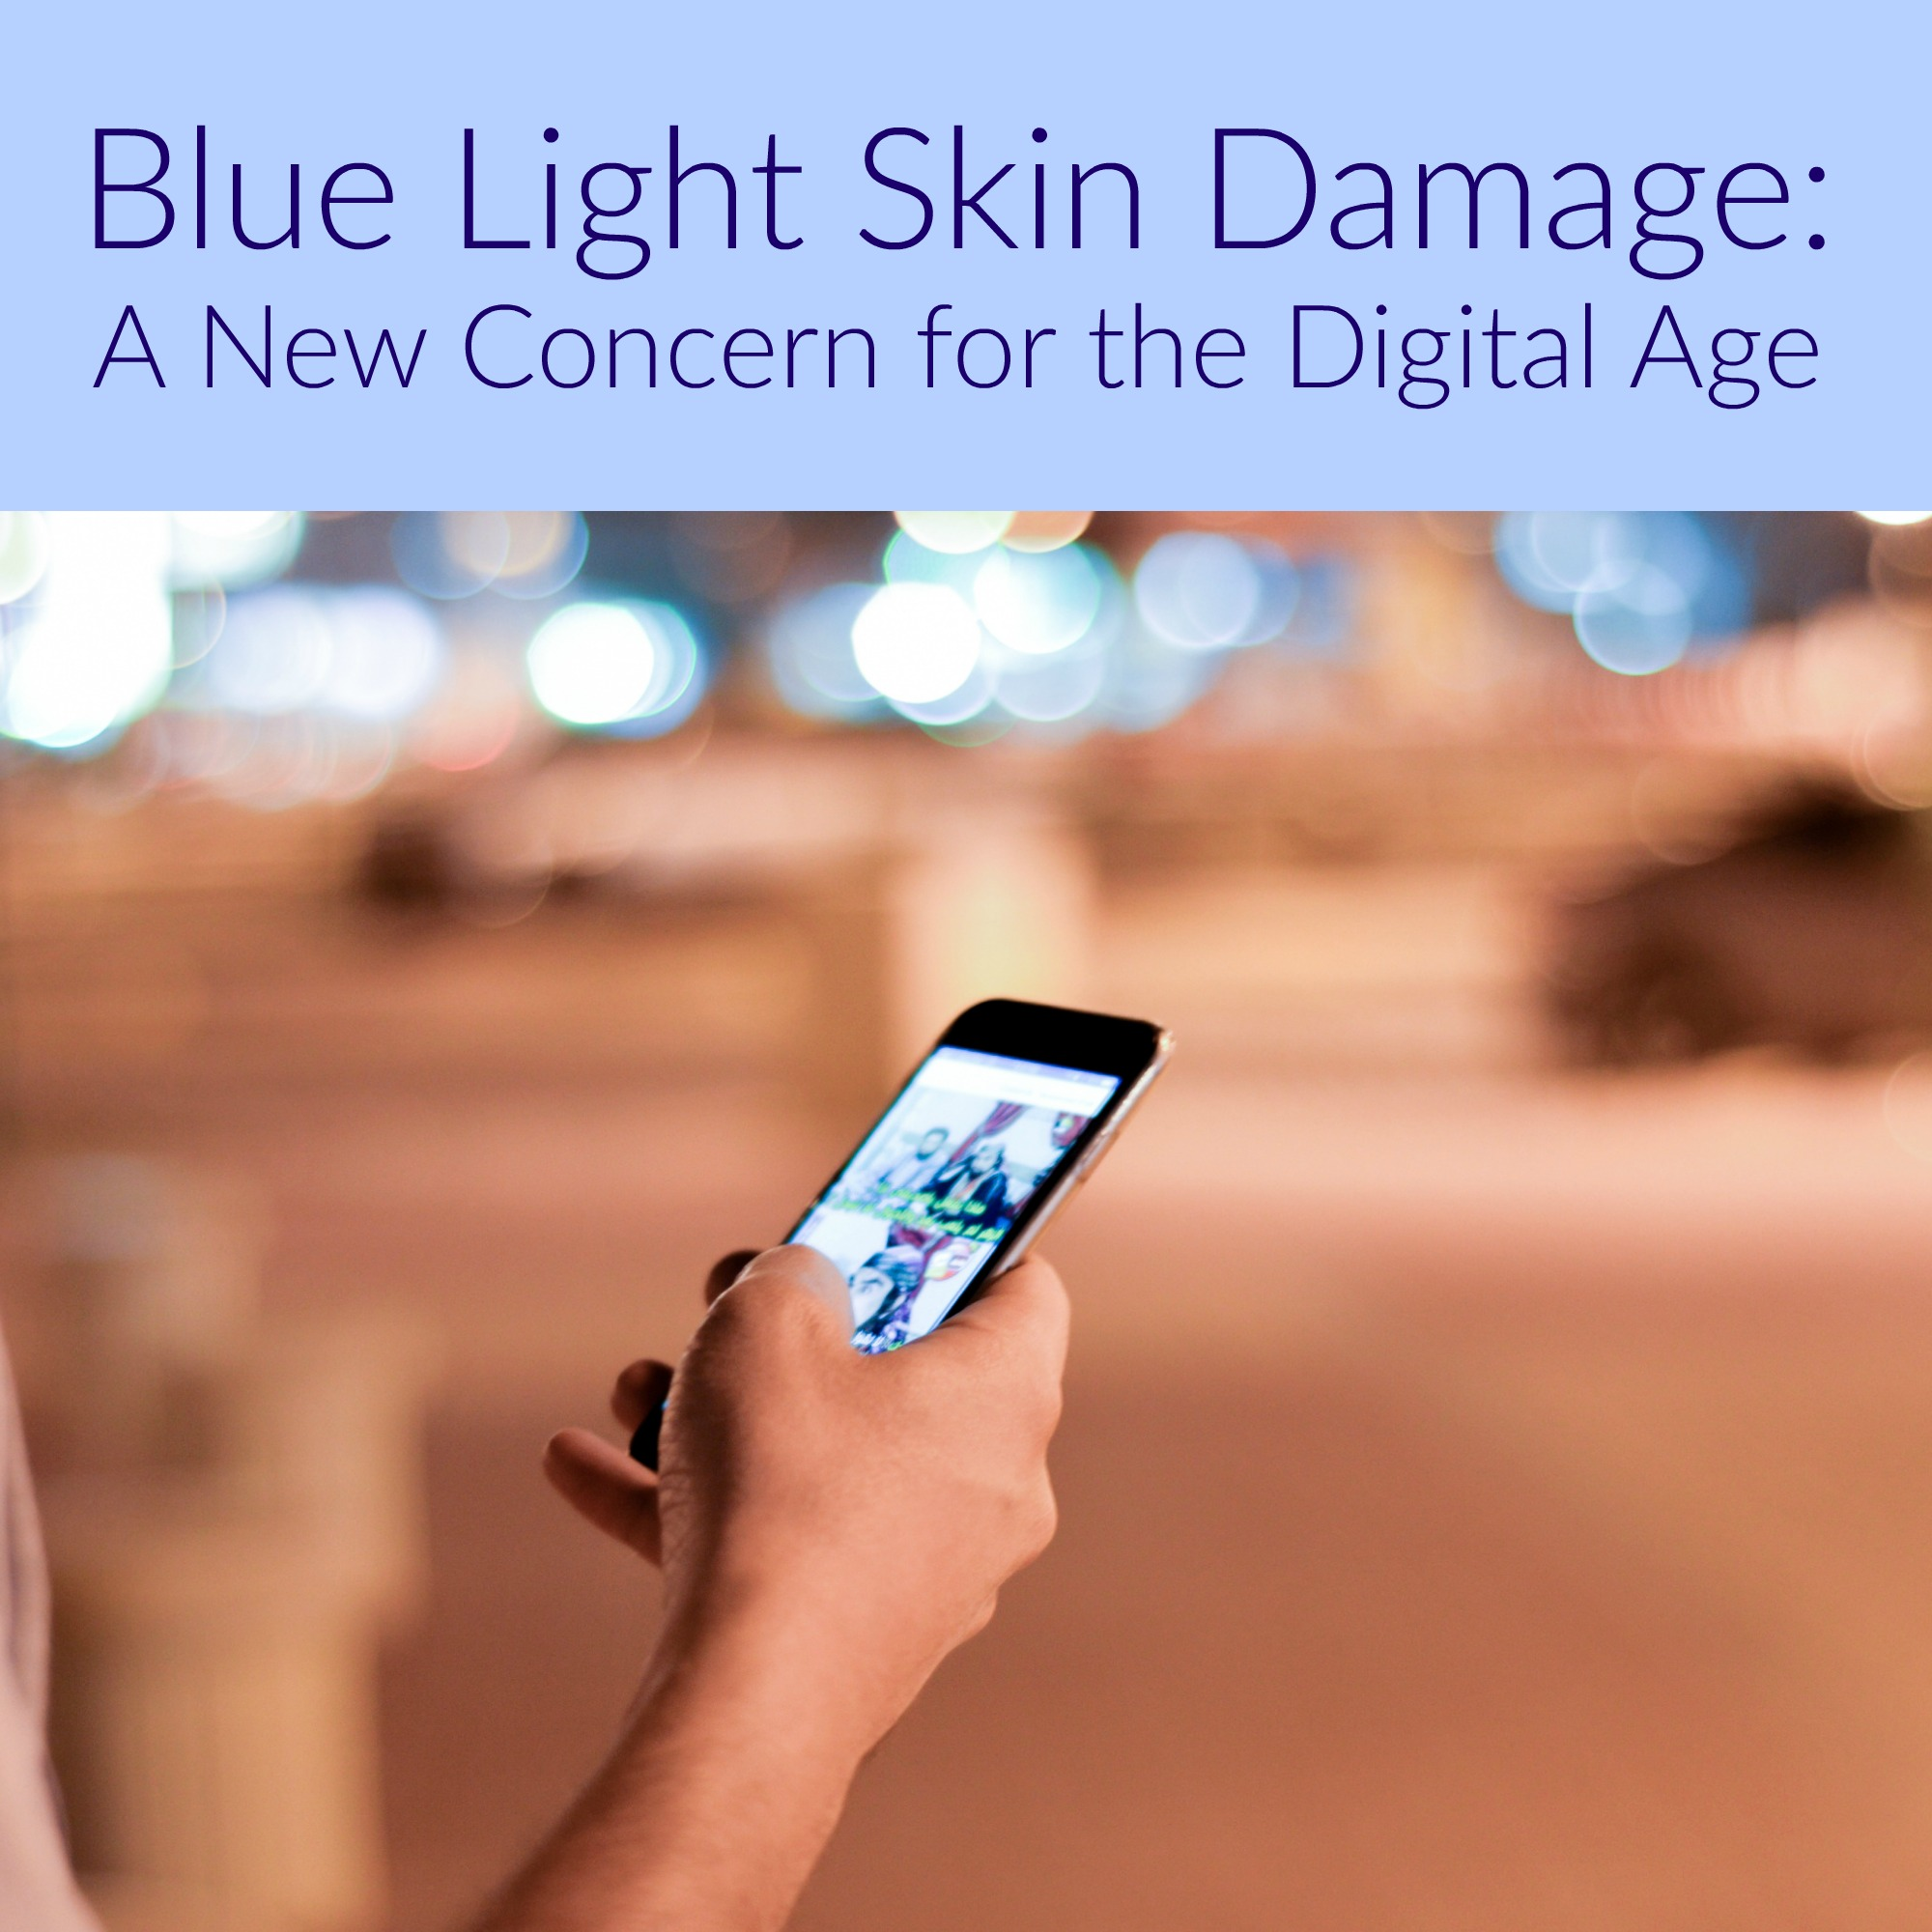 Blue Light Skin Damage - A New Concern for the Digital Age